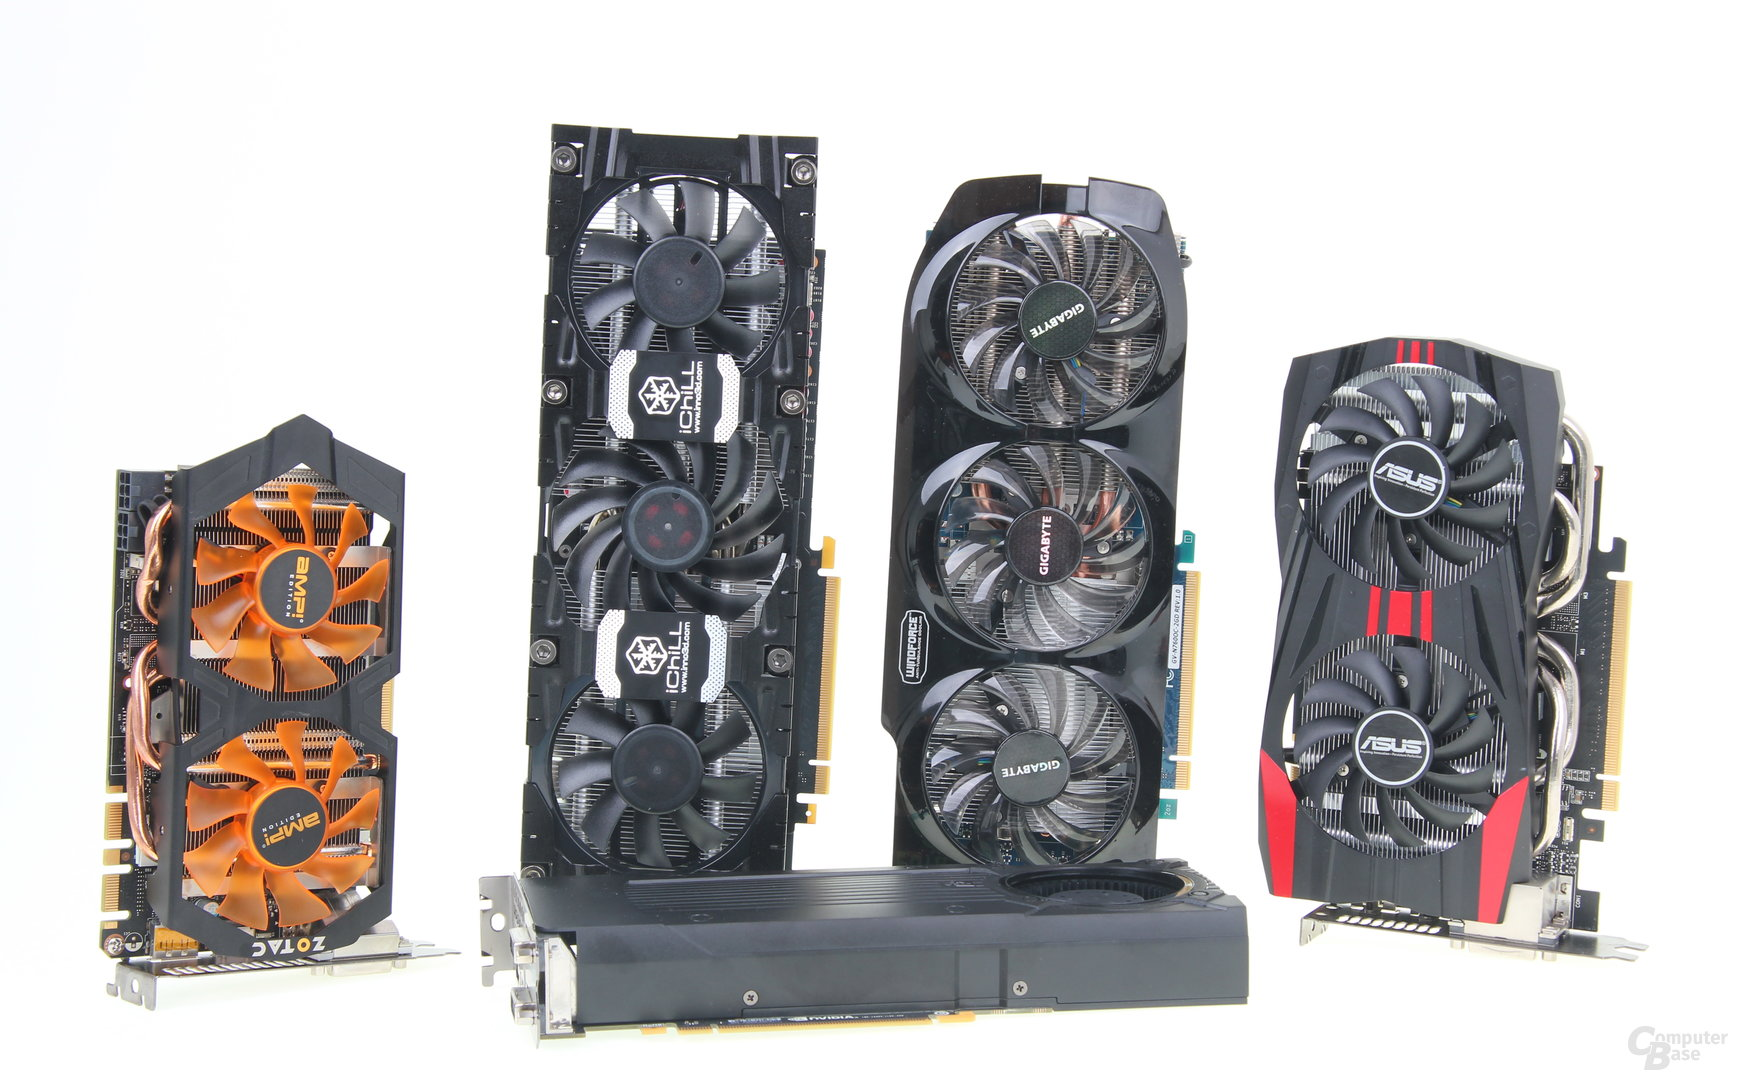 Partnerkarten der GeForce GTX 760